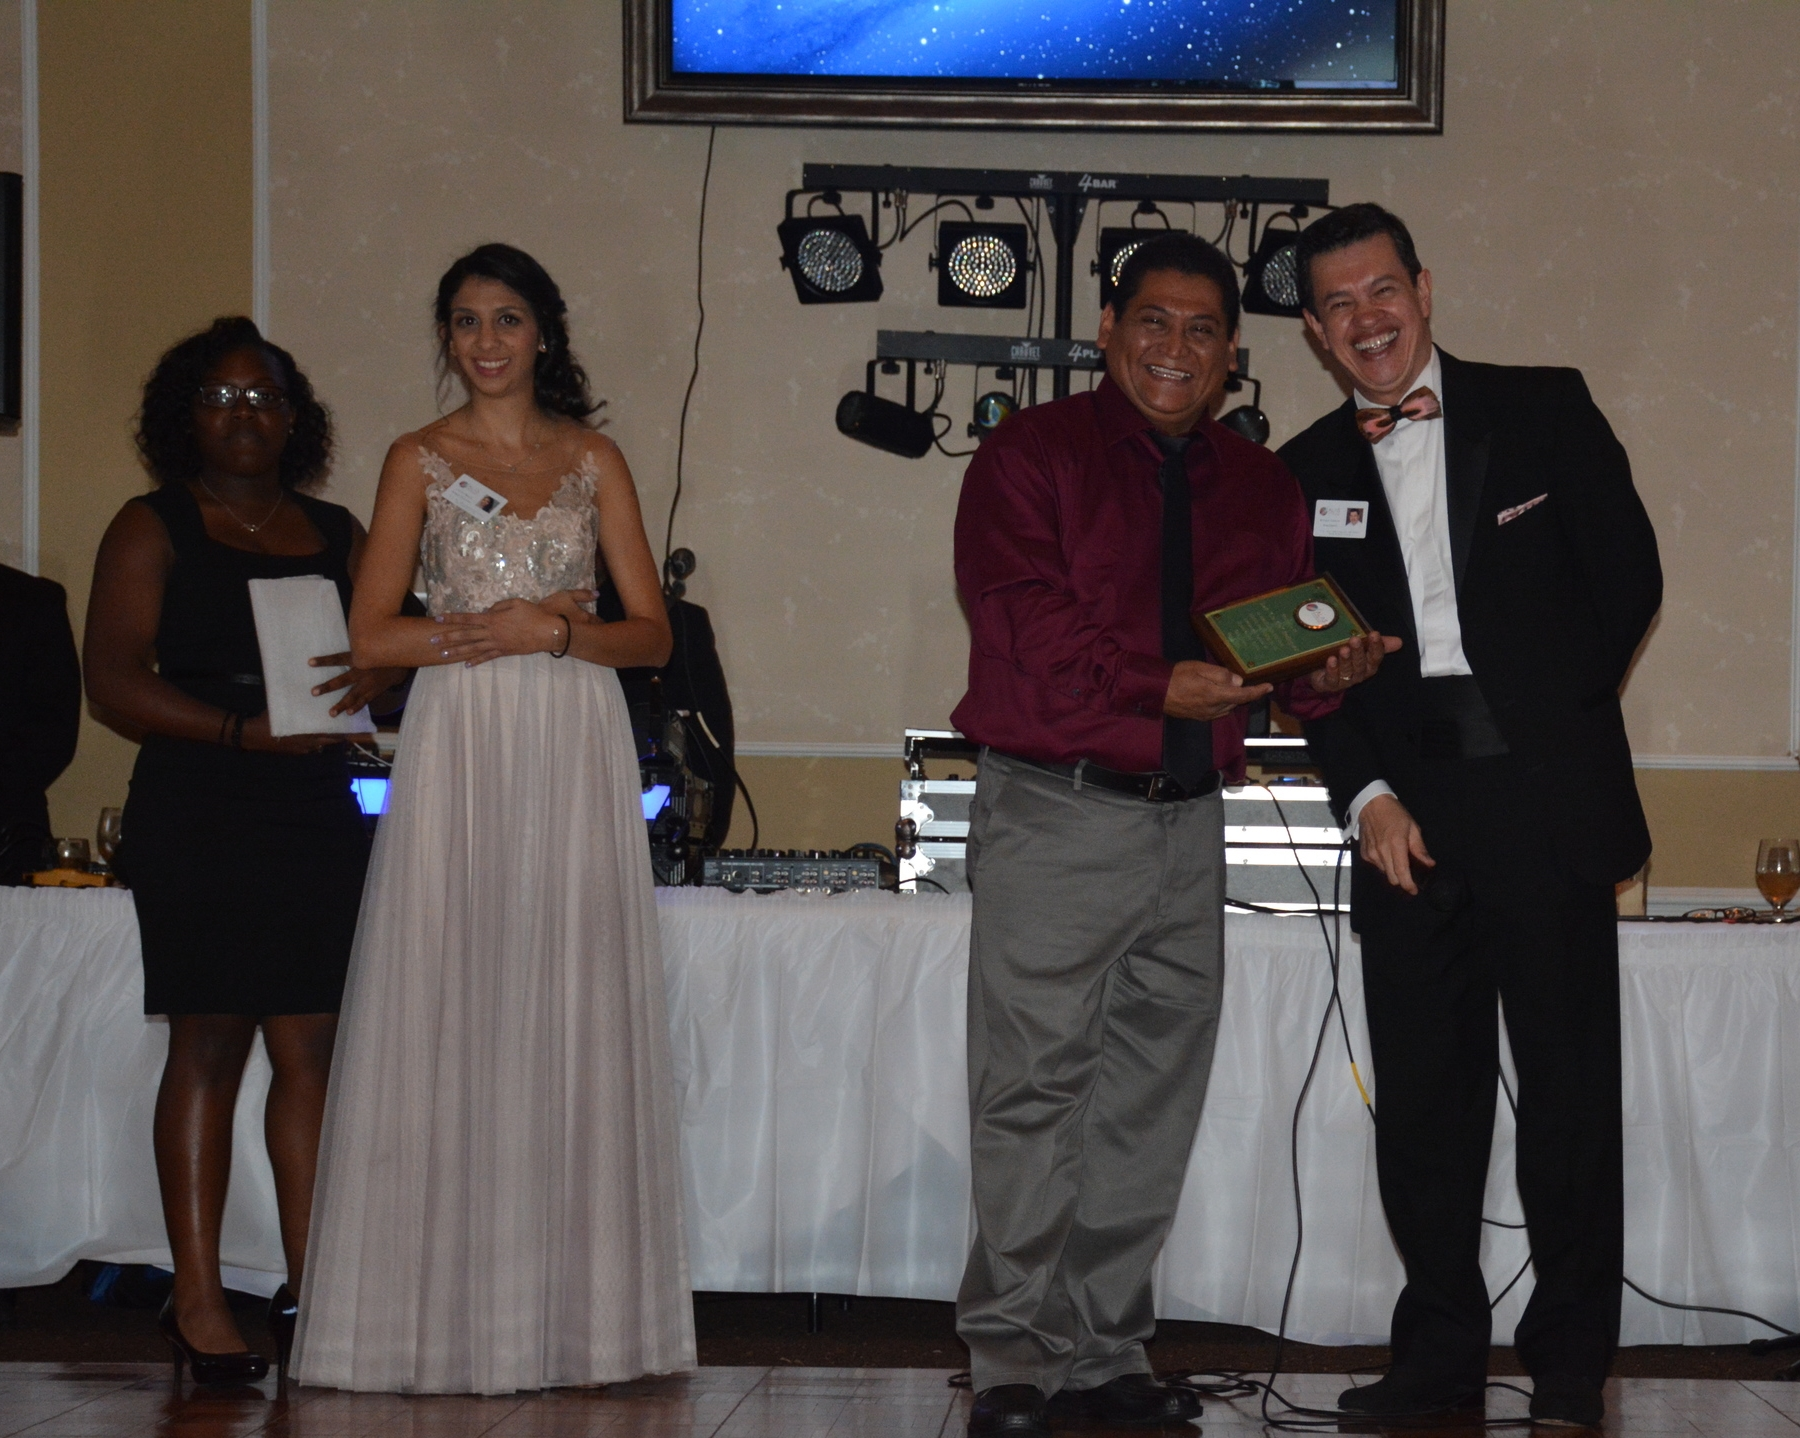 Romell Cooks, Yelitza Maura, and Dr. Salazar recognize our 2015 DJ